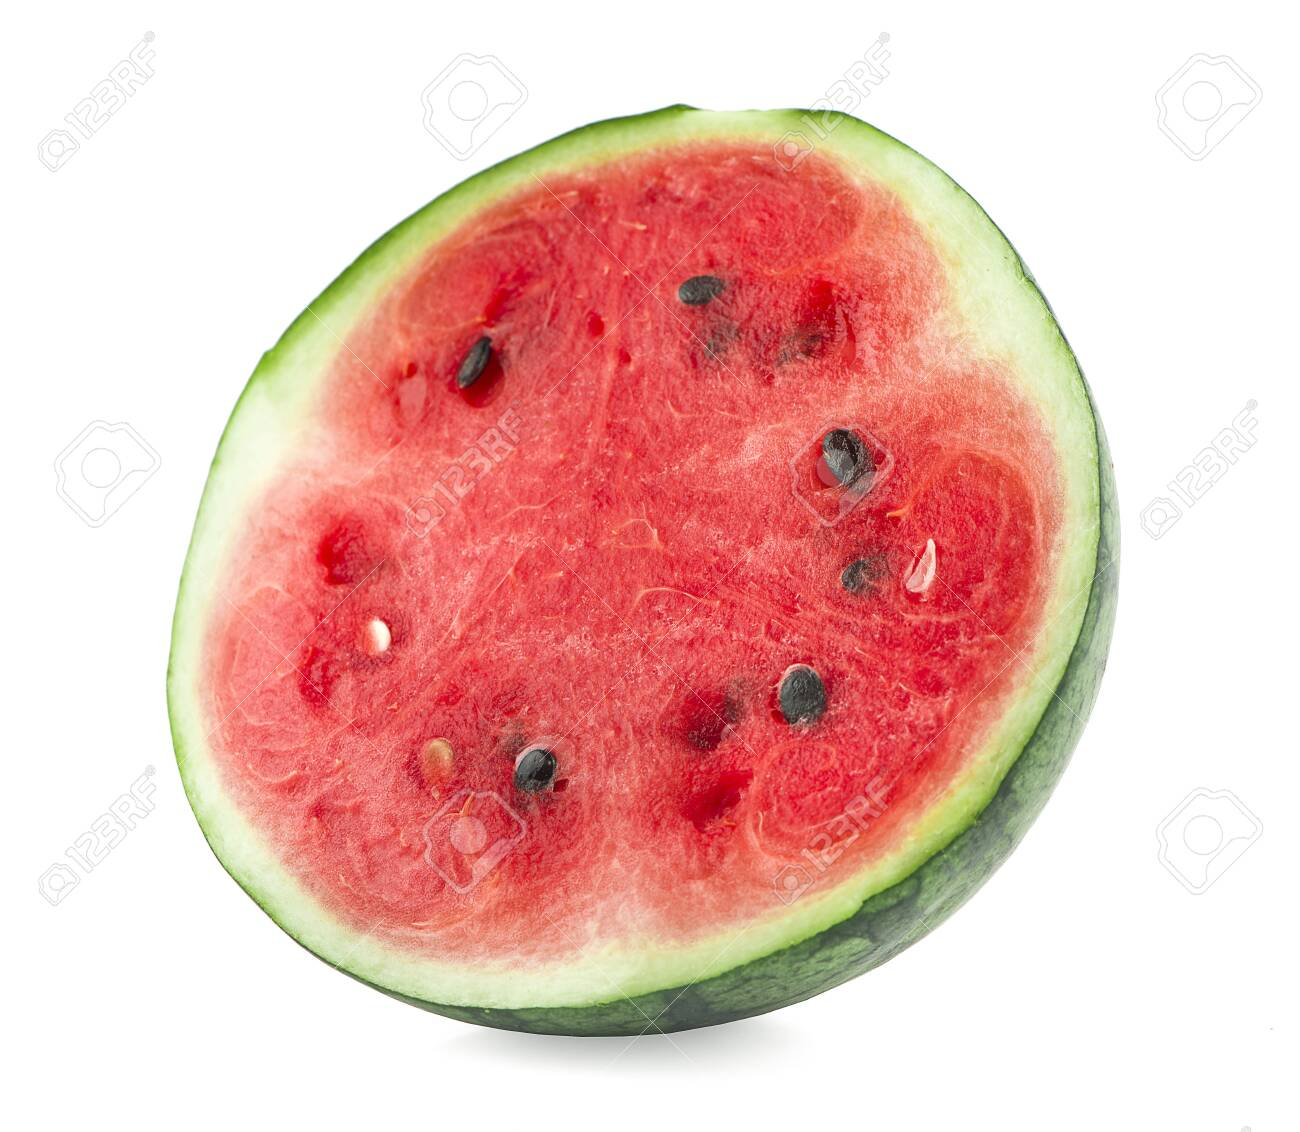 half of watermelon an isolated on white background - 138938330